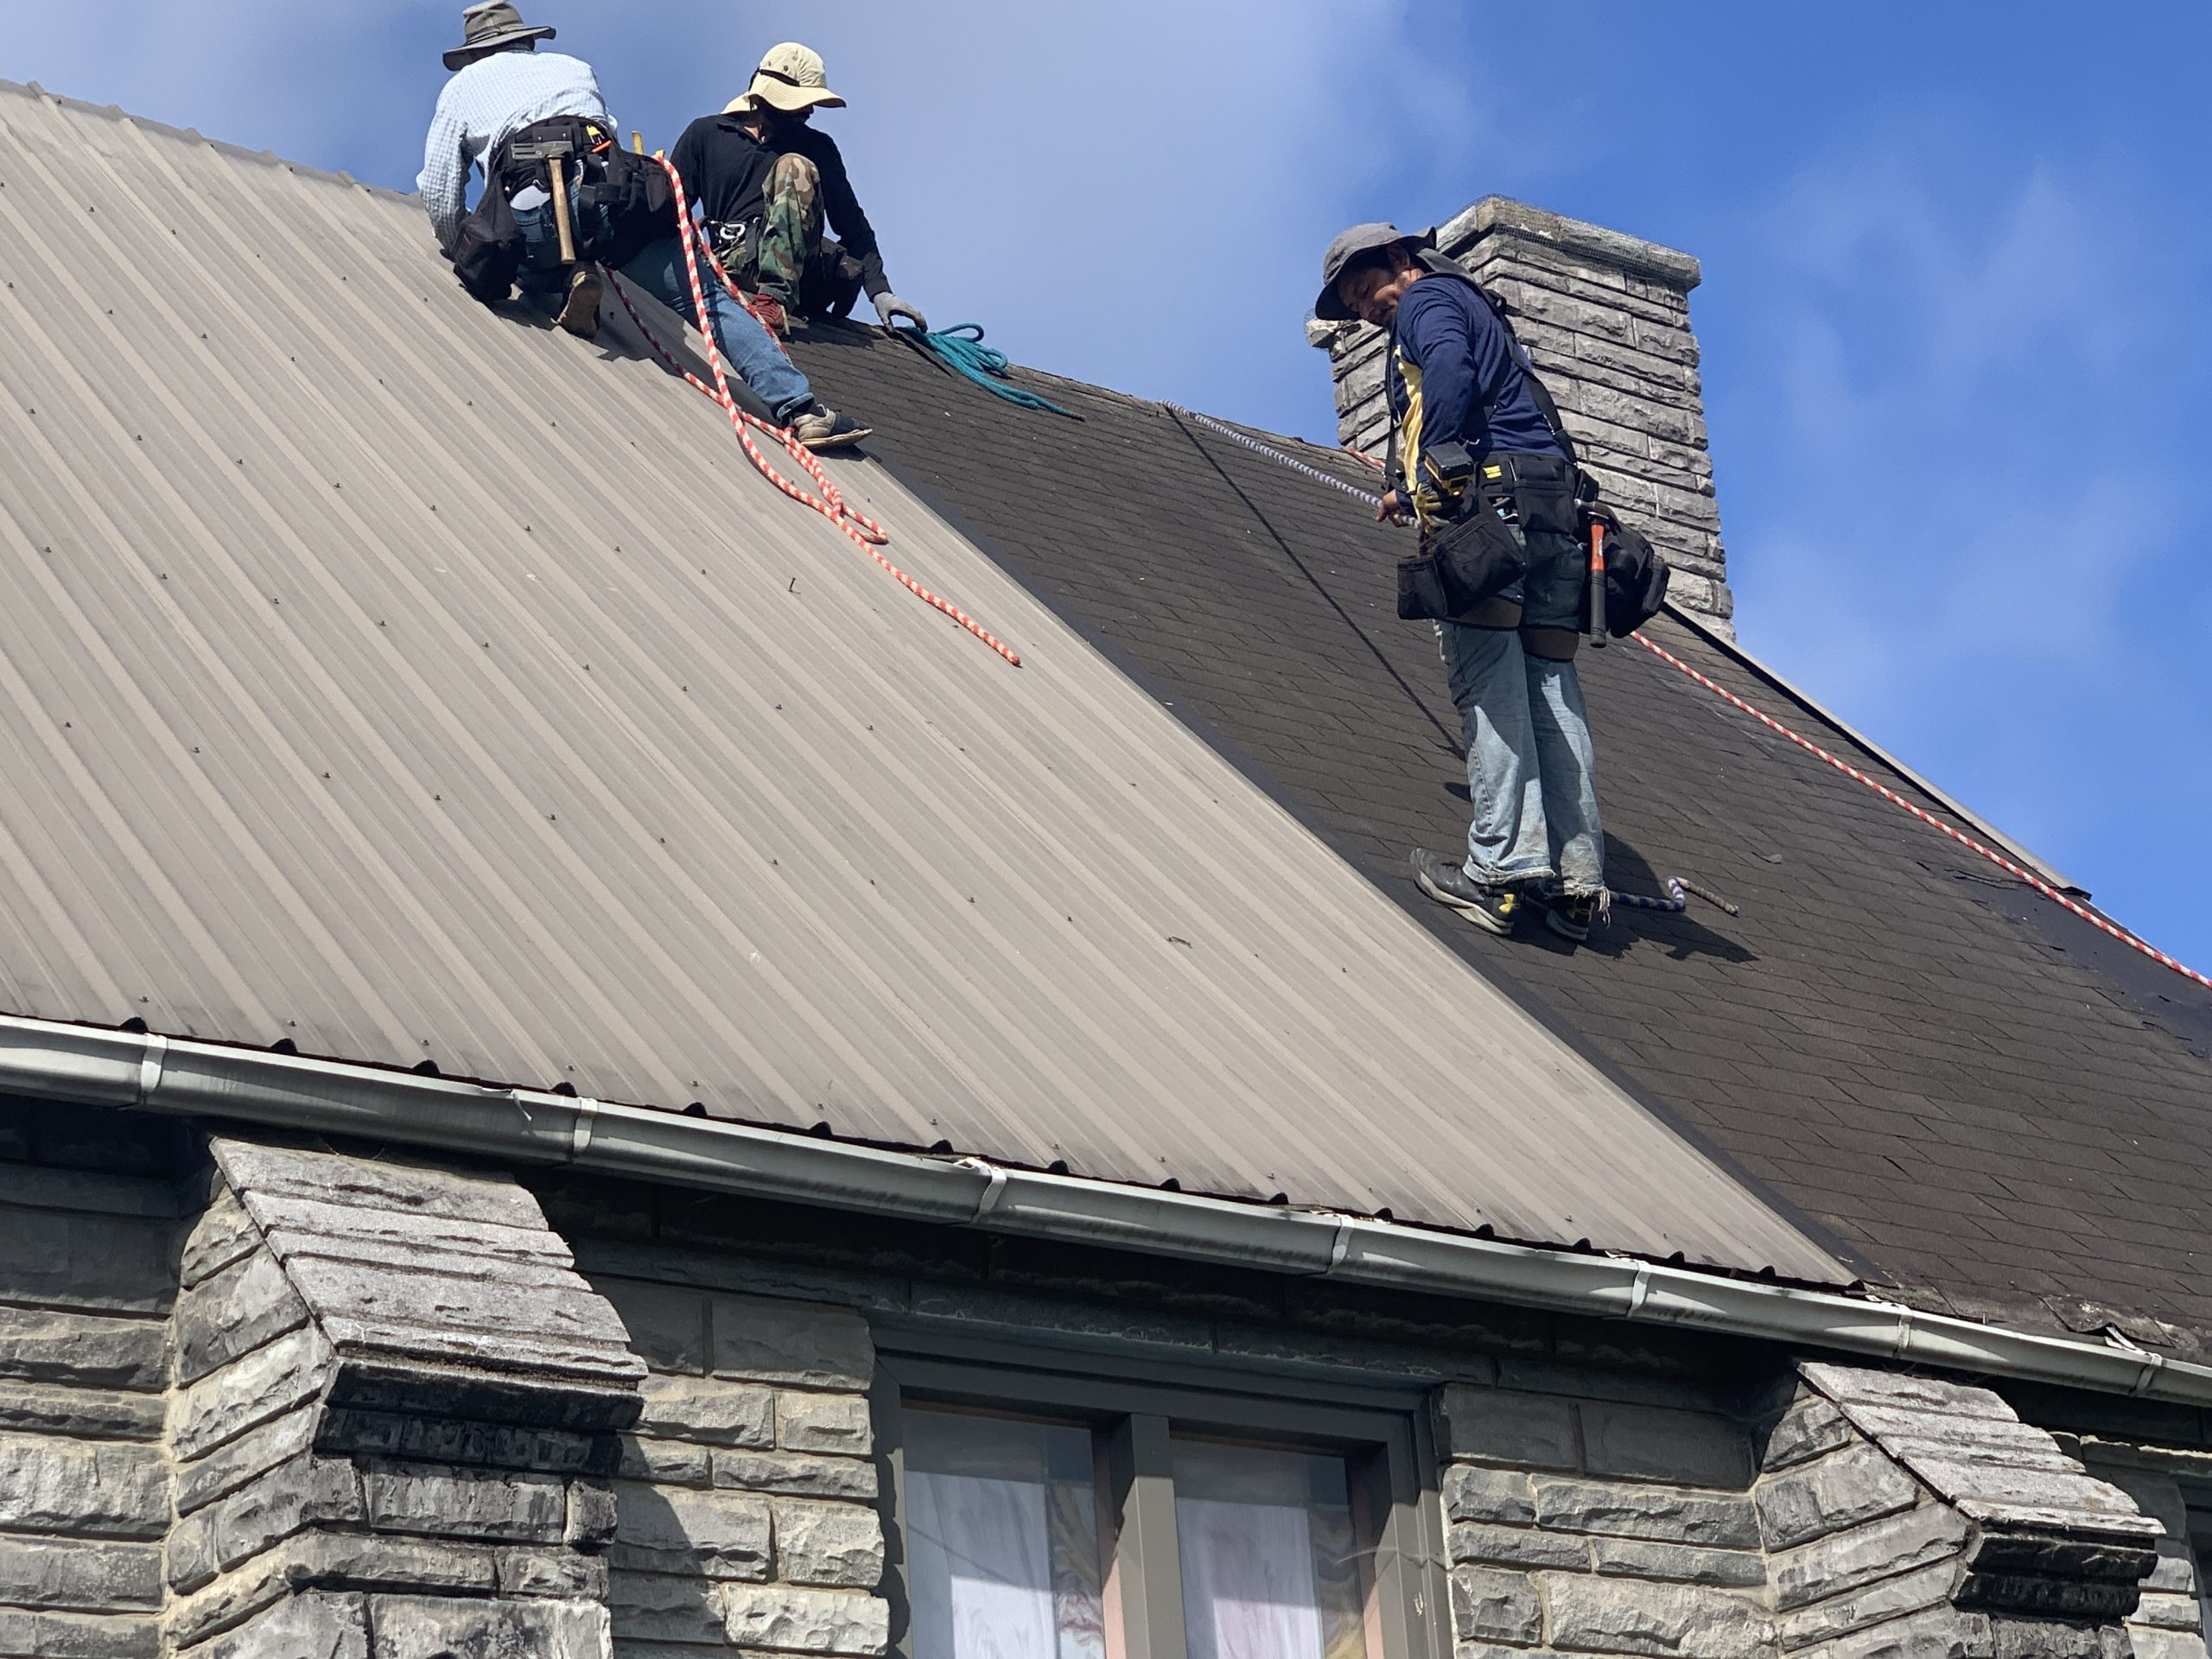 This is a view of the roof installers working on the roof of the church.